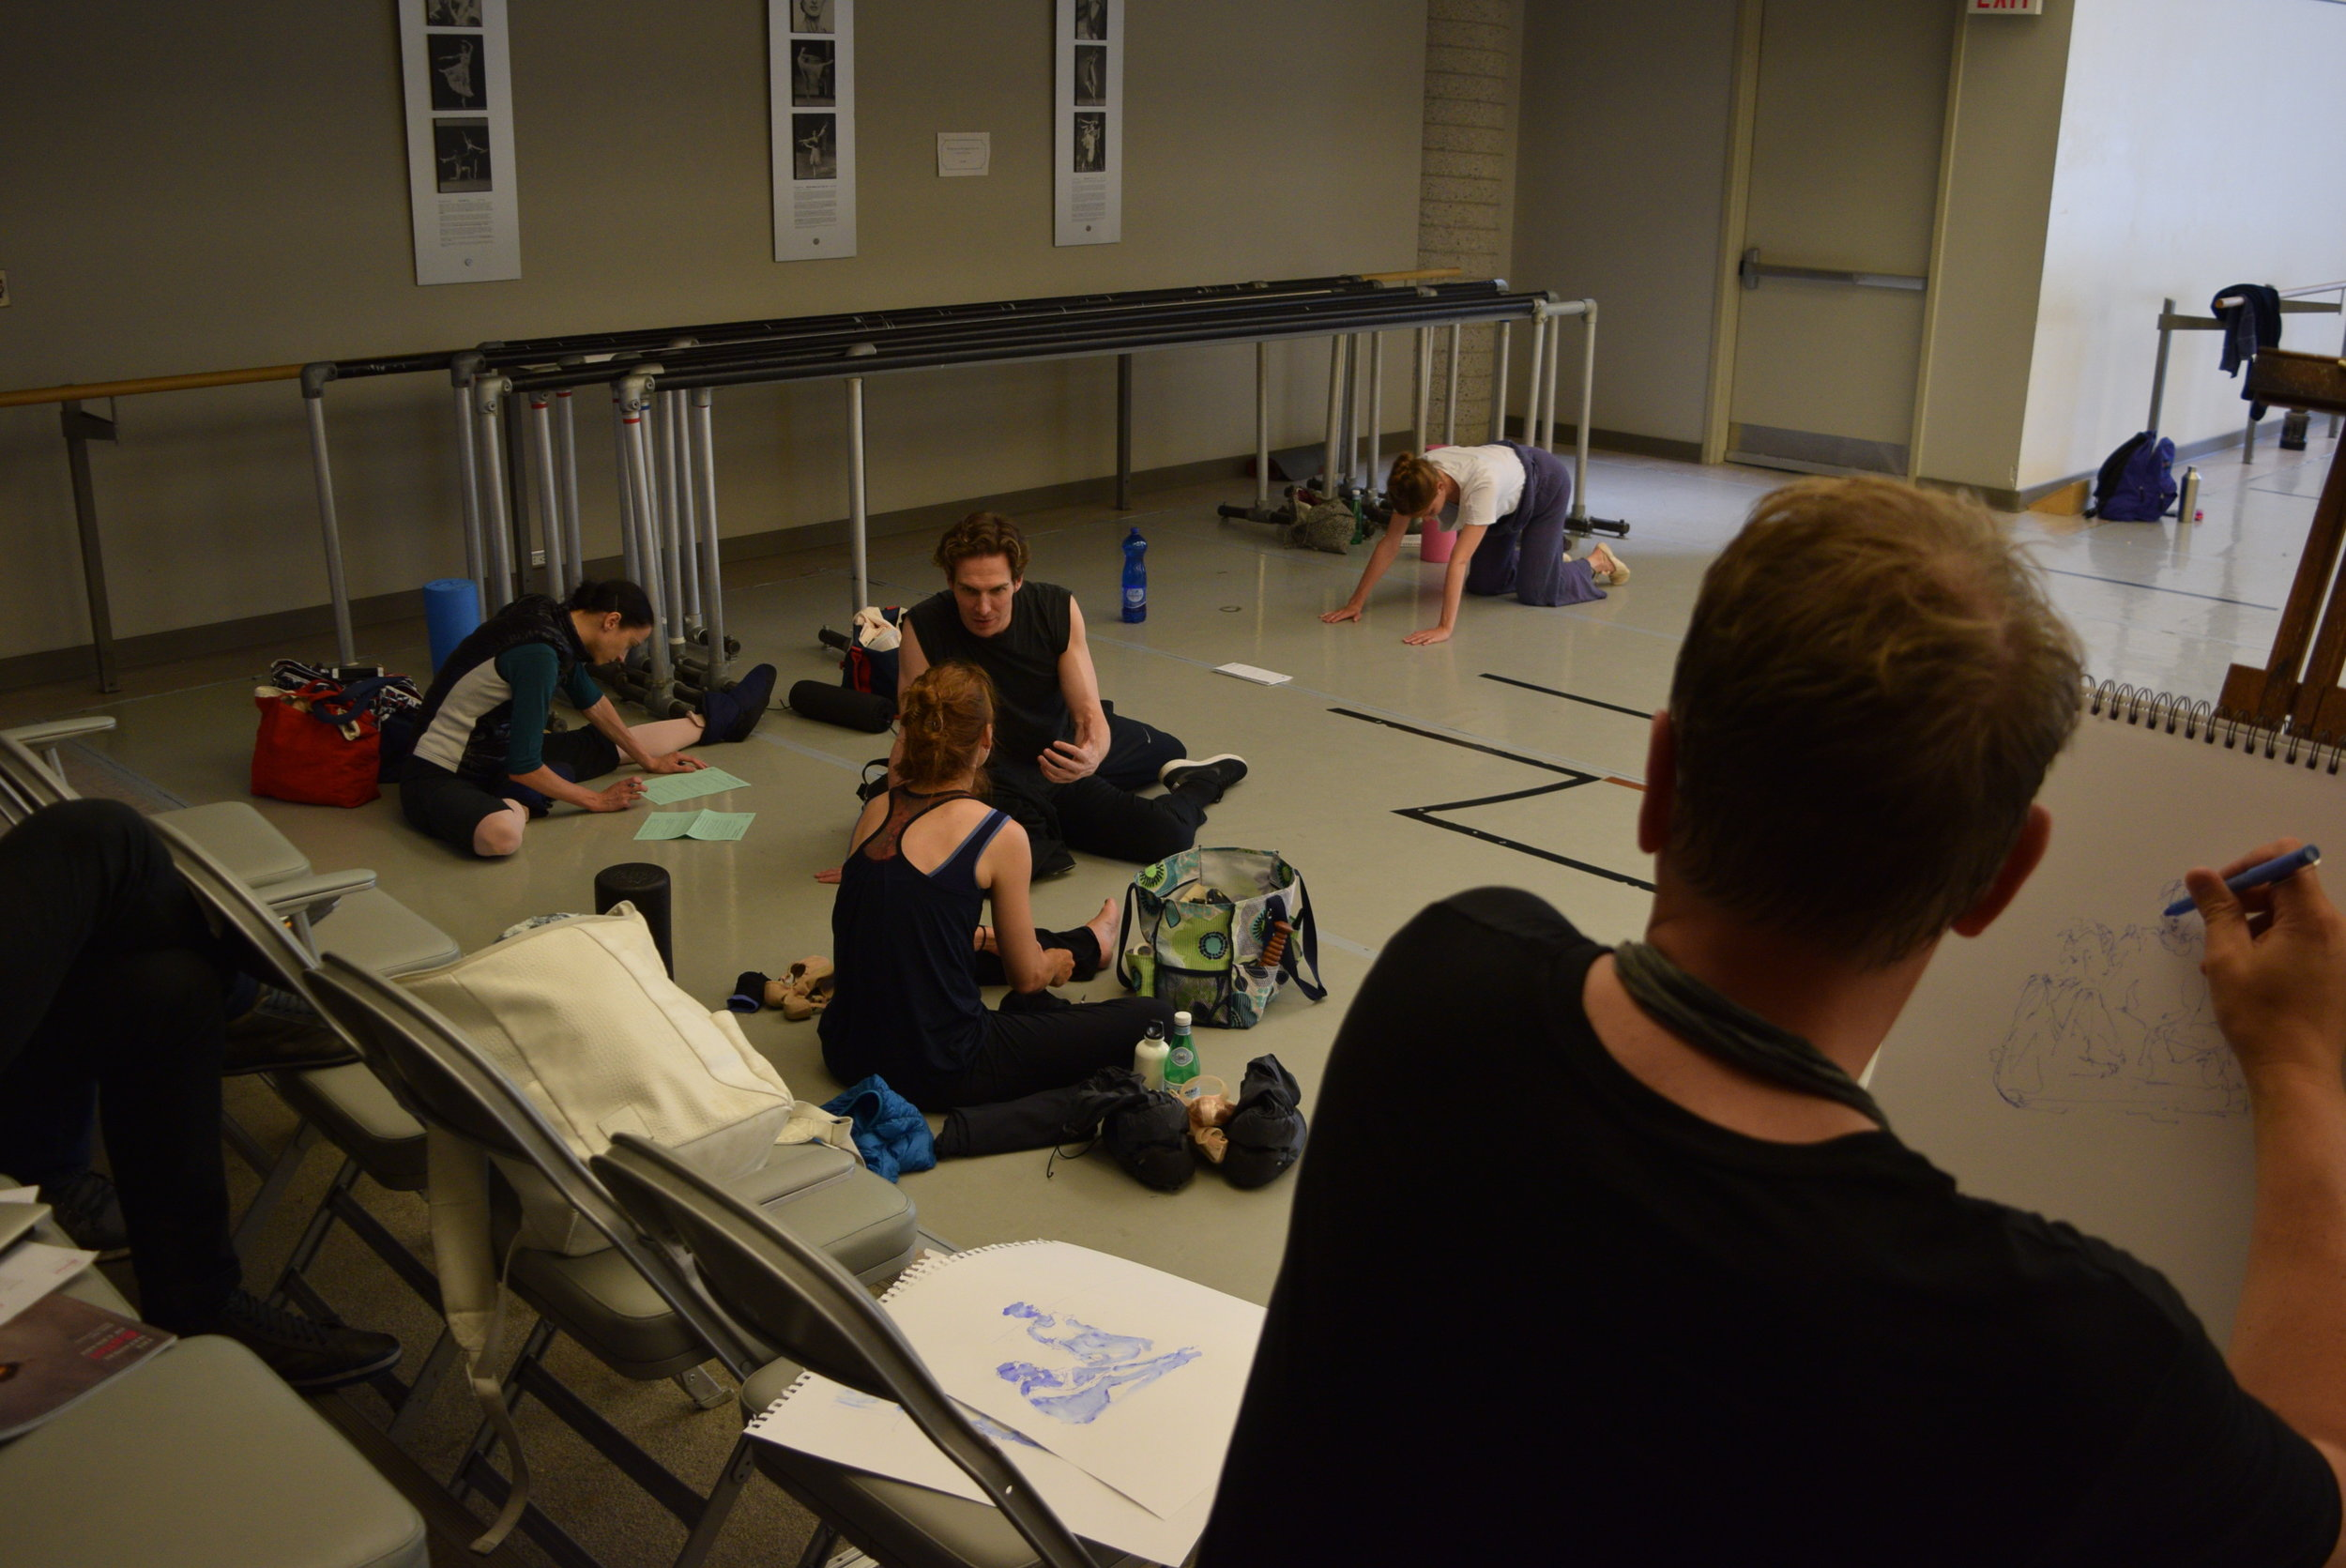 Sketching dancers during their Company Class in 2017 at the National Ballet of Canada.